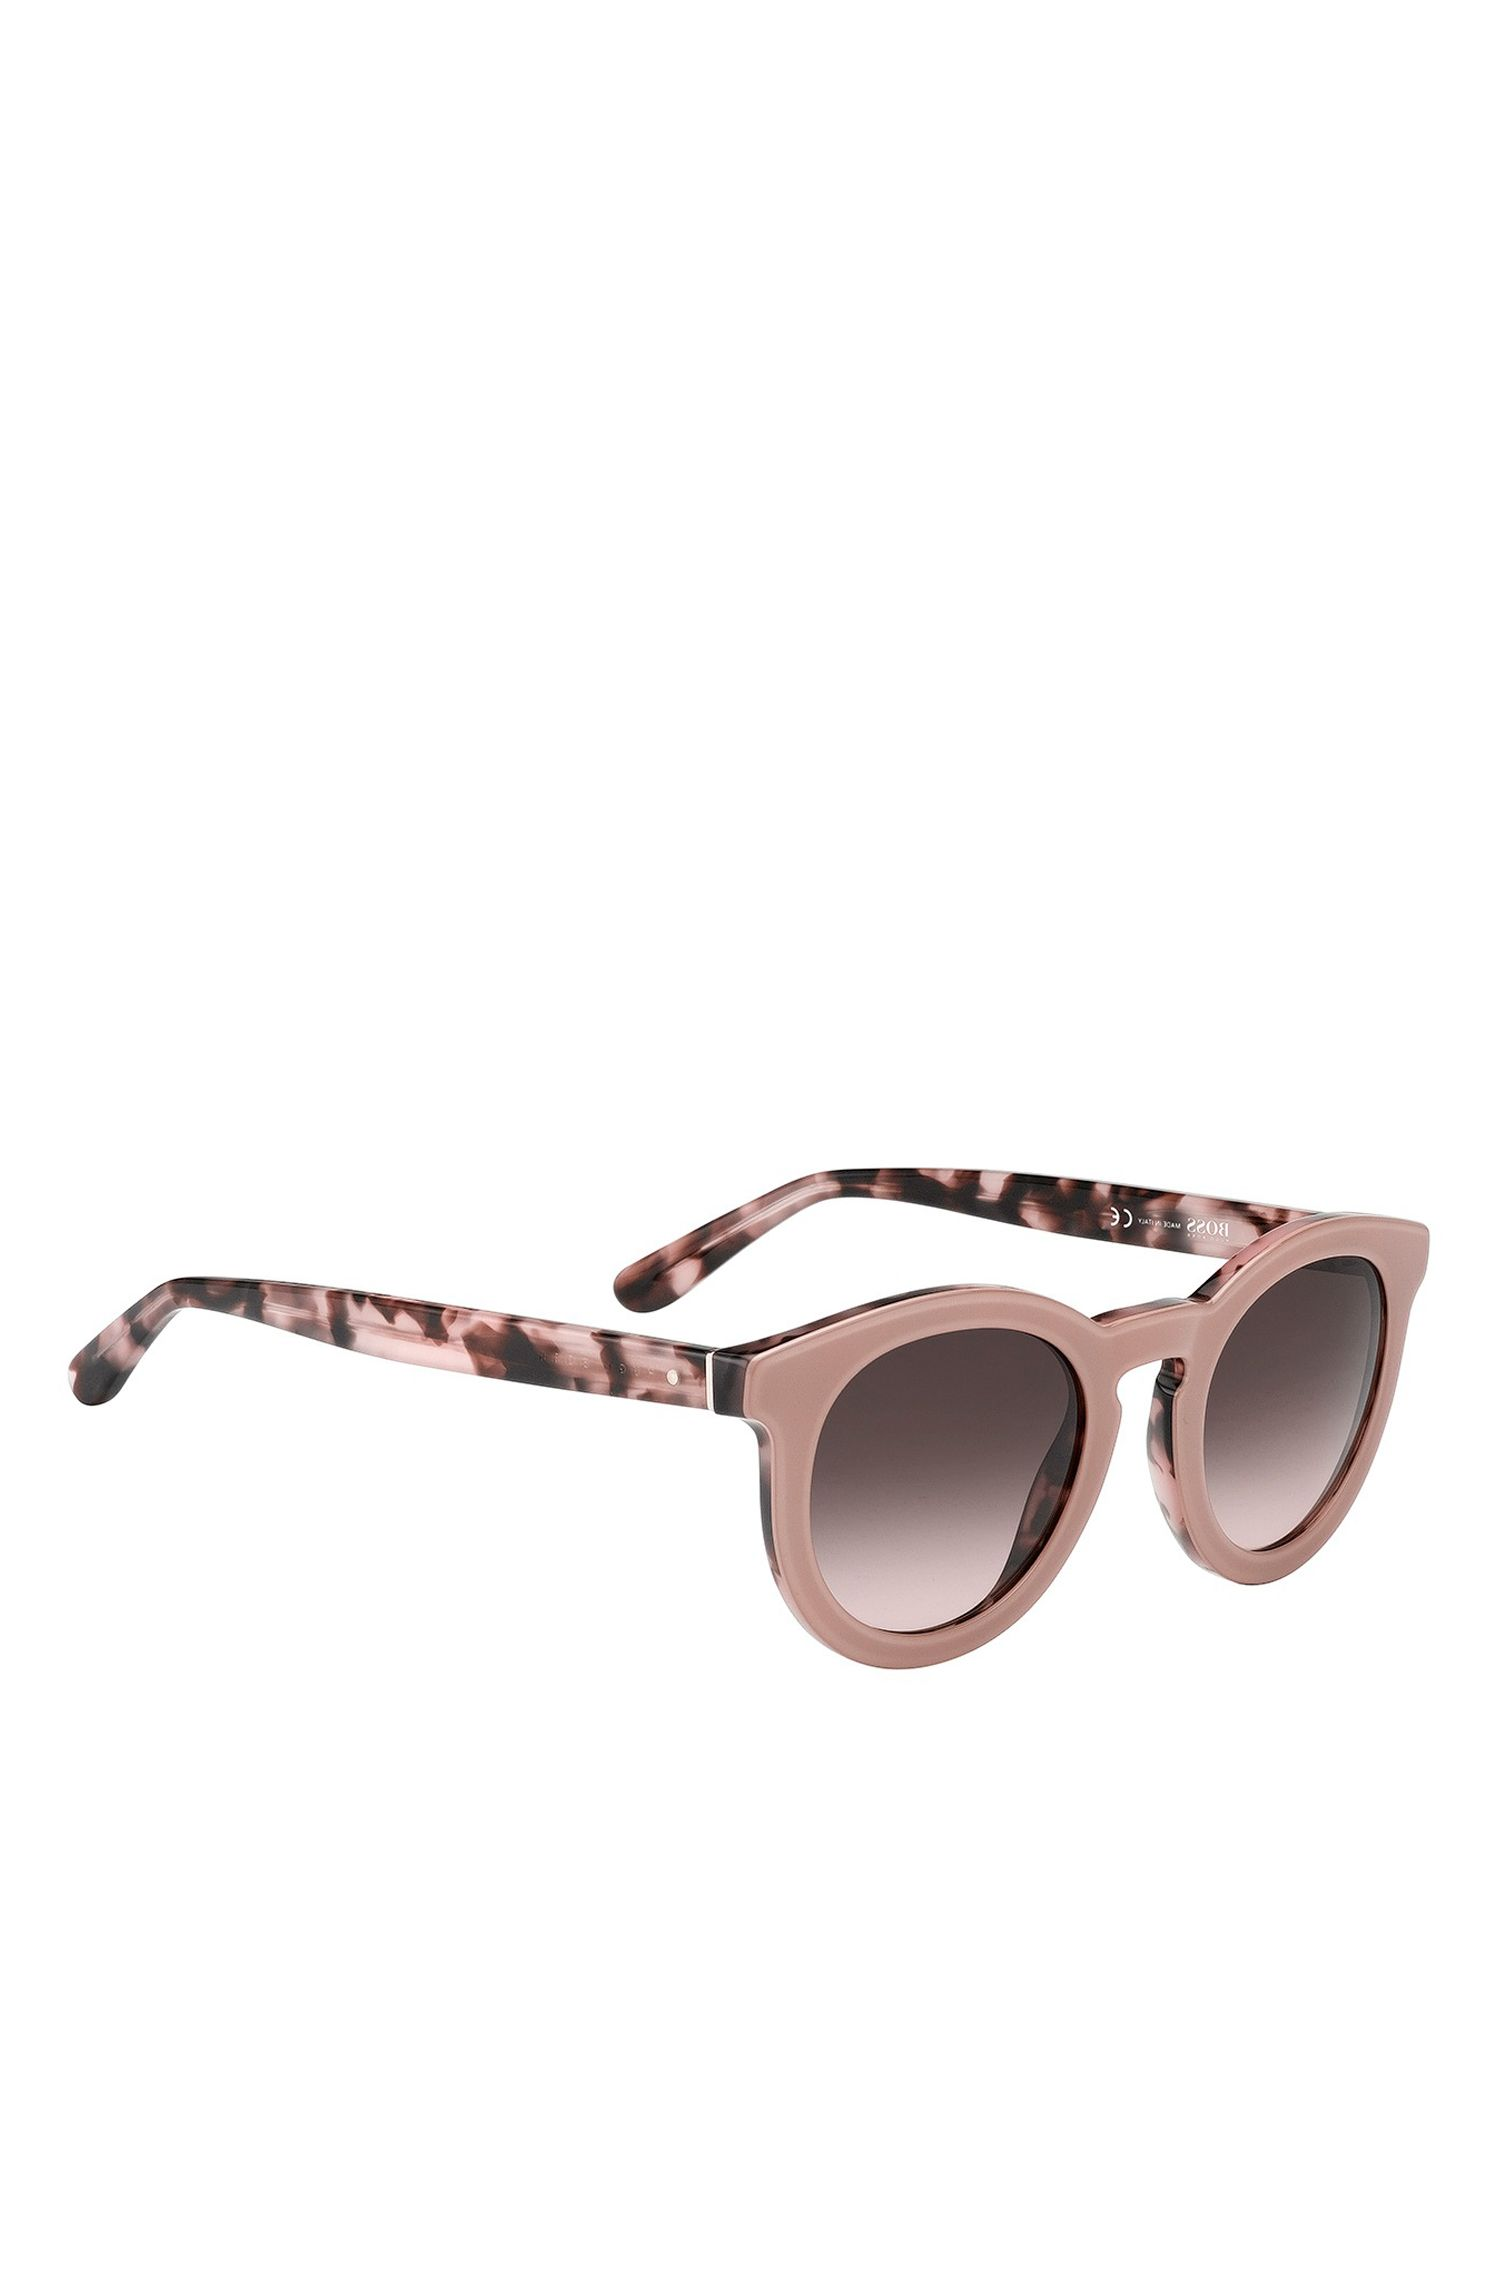 Gradient Lens Acetate Sunglasses | BOSS 0742S